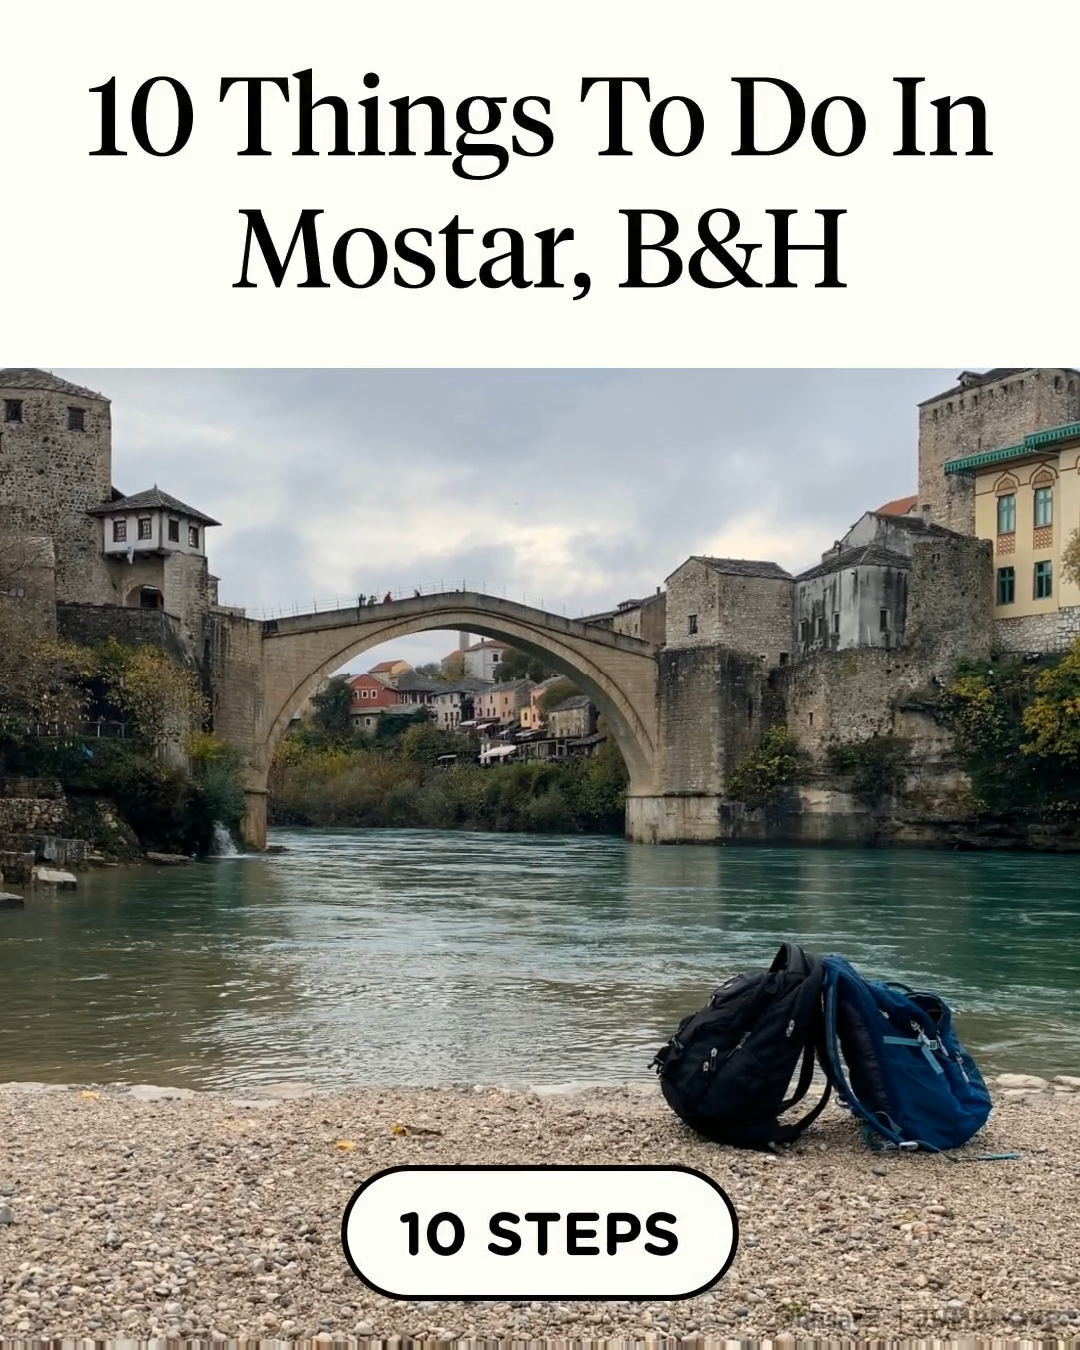 10 Things To Do In Mostar, B&H in 10 steps #jumpropecreators #madeonjumprope #jumpropeapp #jumprope #mostar #travelideas #culturaltrip #traveltour #travelguide #adventure #travel #traveldestinations #traveltips #travelhacks #solotravel #travelguide #traveltour #tourism